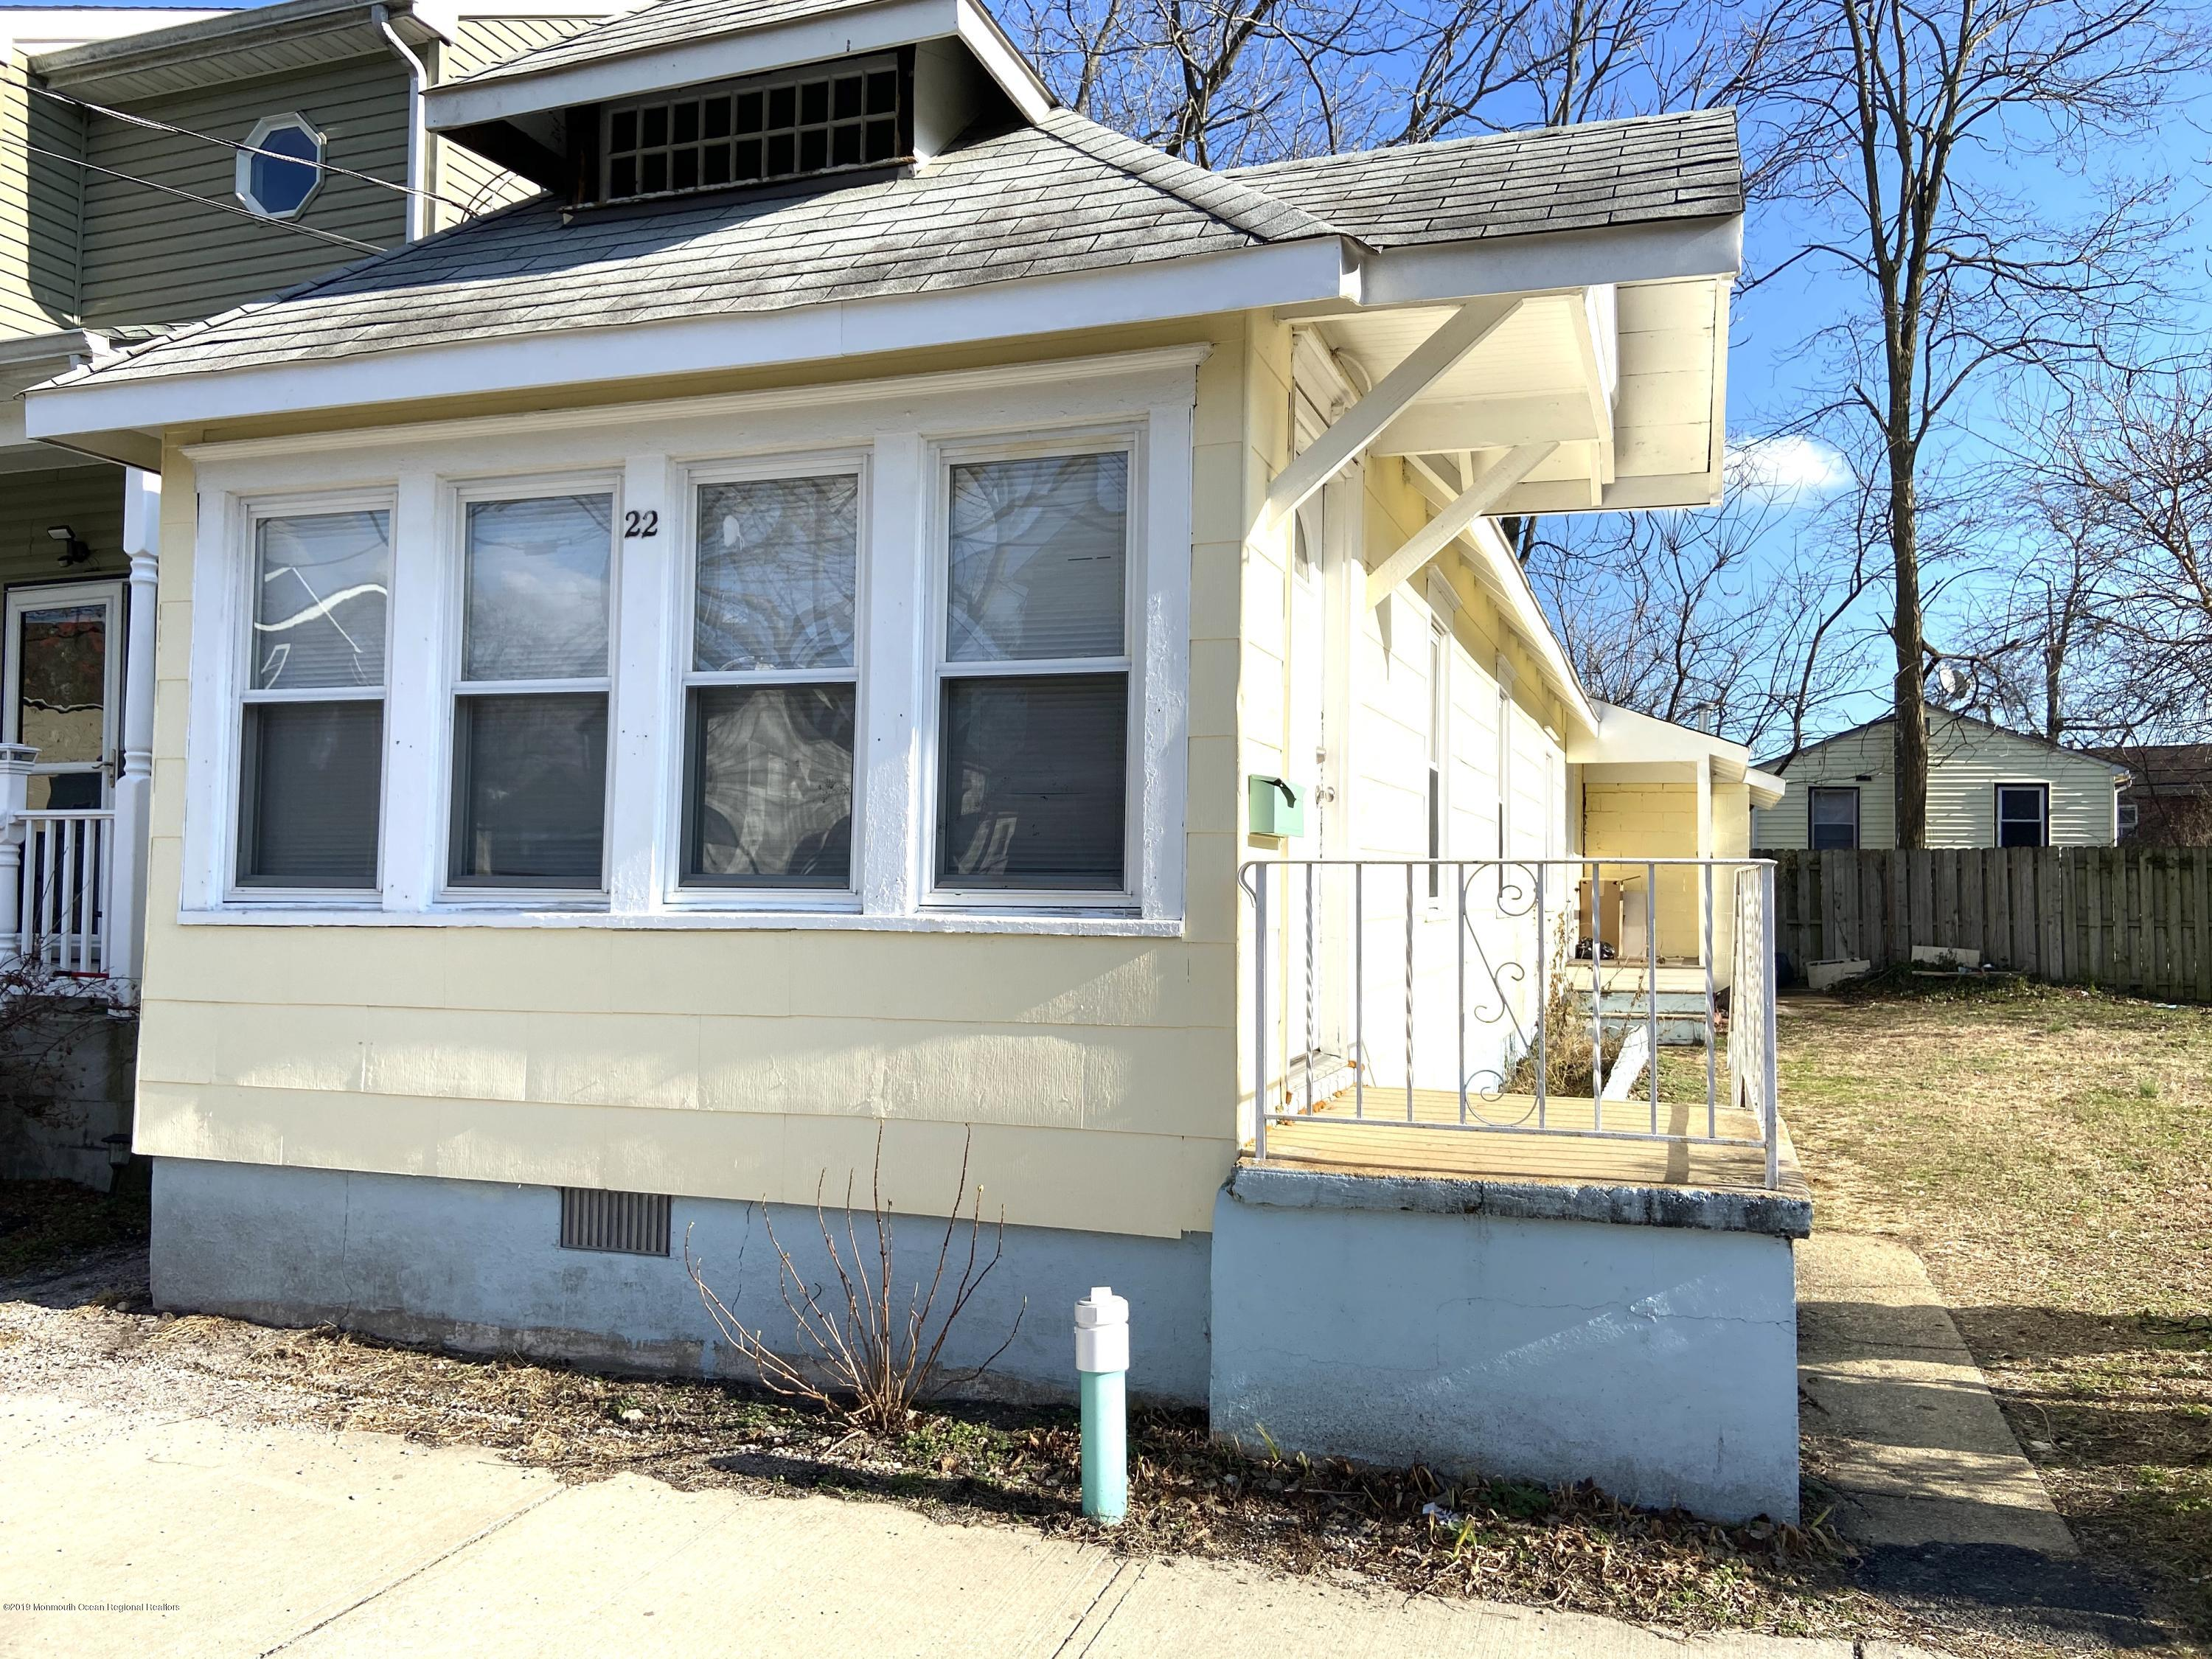 Welcome home to this cozy single family 3 bedroom rental.  on a one-way street. Lots of windows for light, and hardwood floors. Close to town. Freshly painted and available now! Good credit and security deposit.